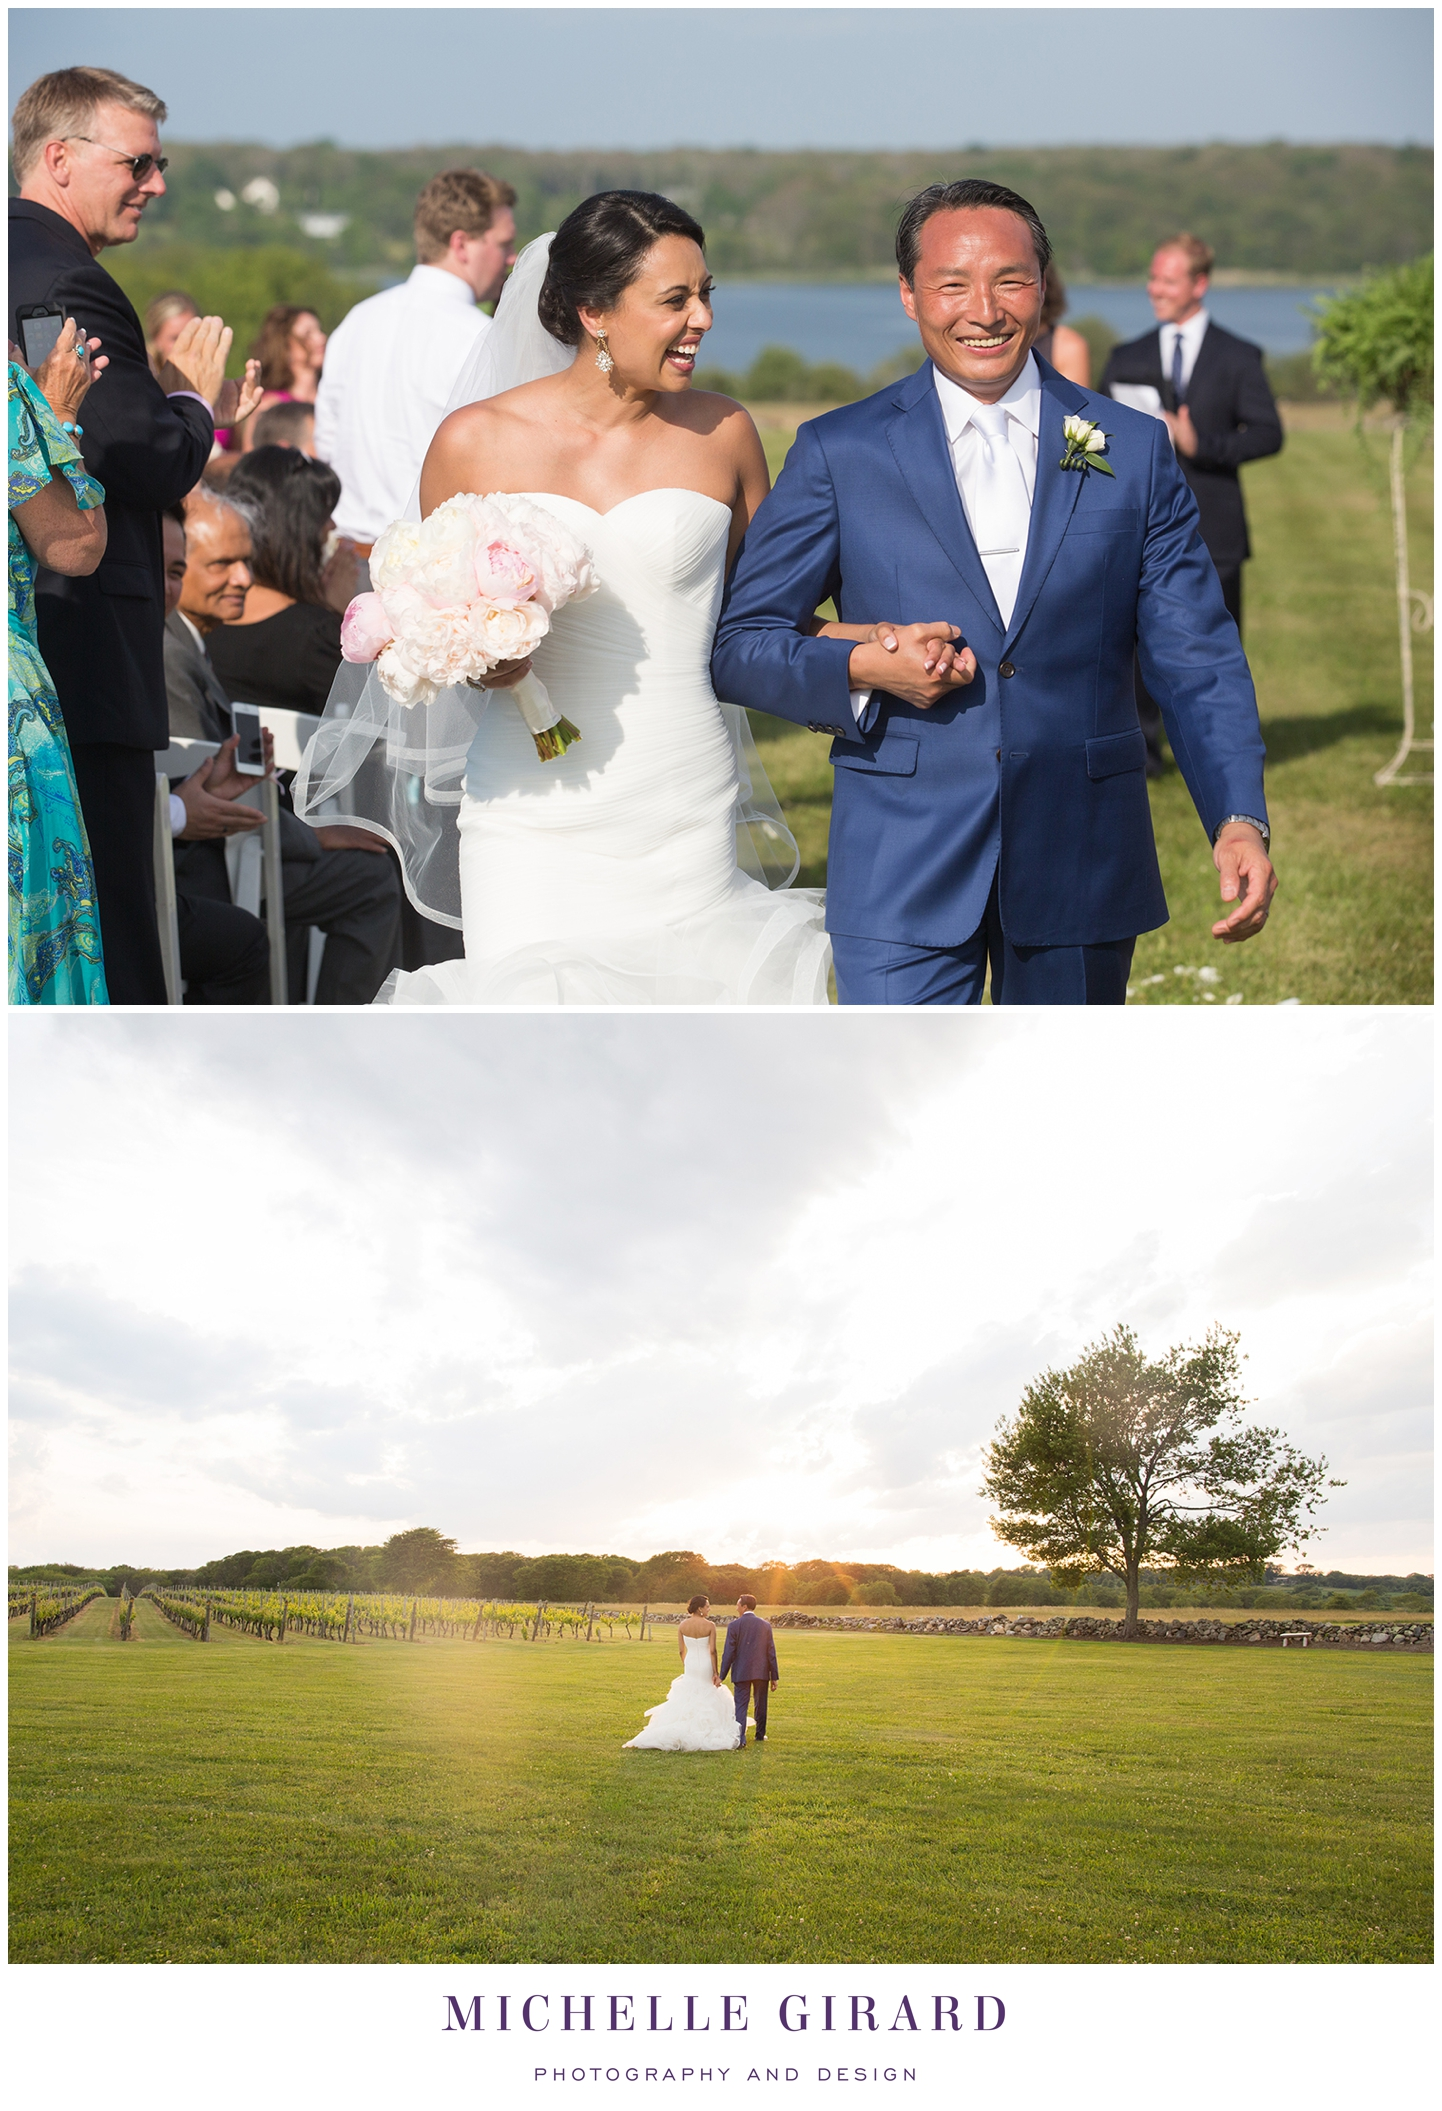 SakonnetVineyardJuneWedding_LittleComptonRI_MichelleGirardPhotography6a.jpg